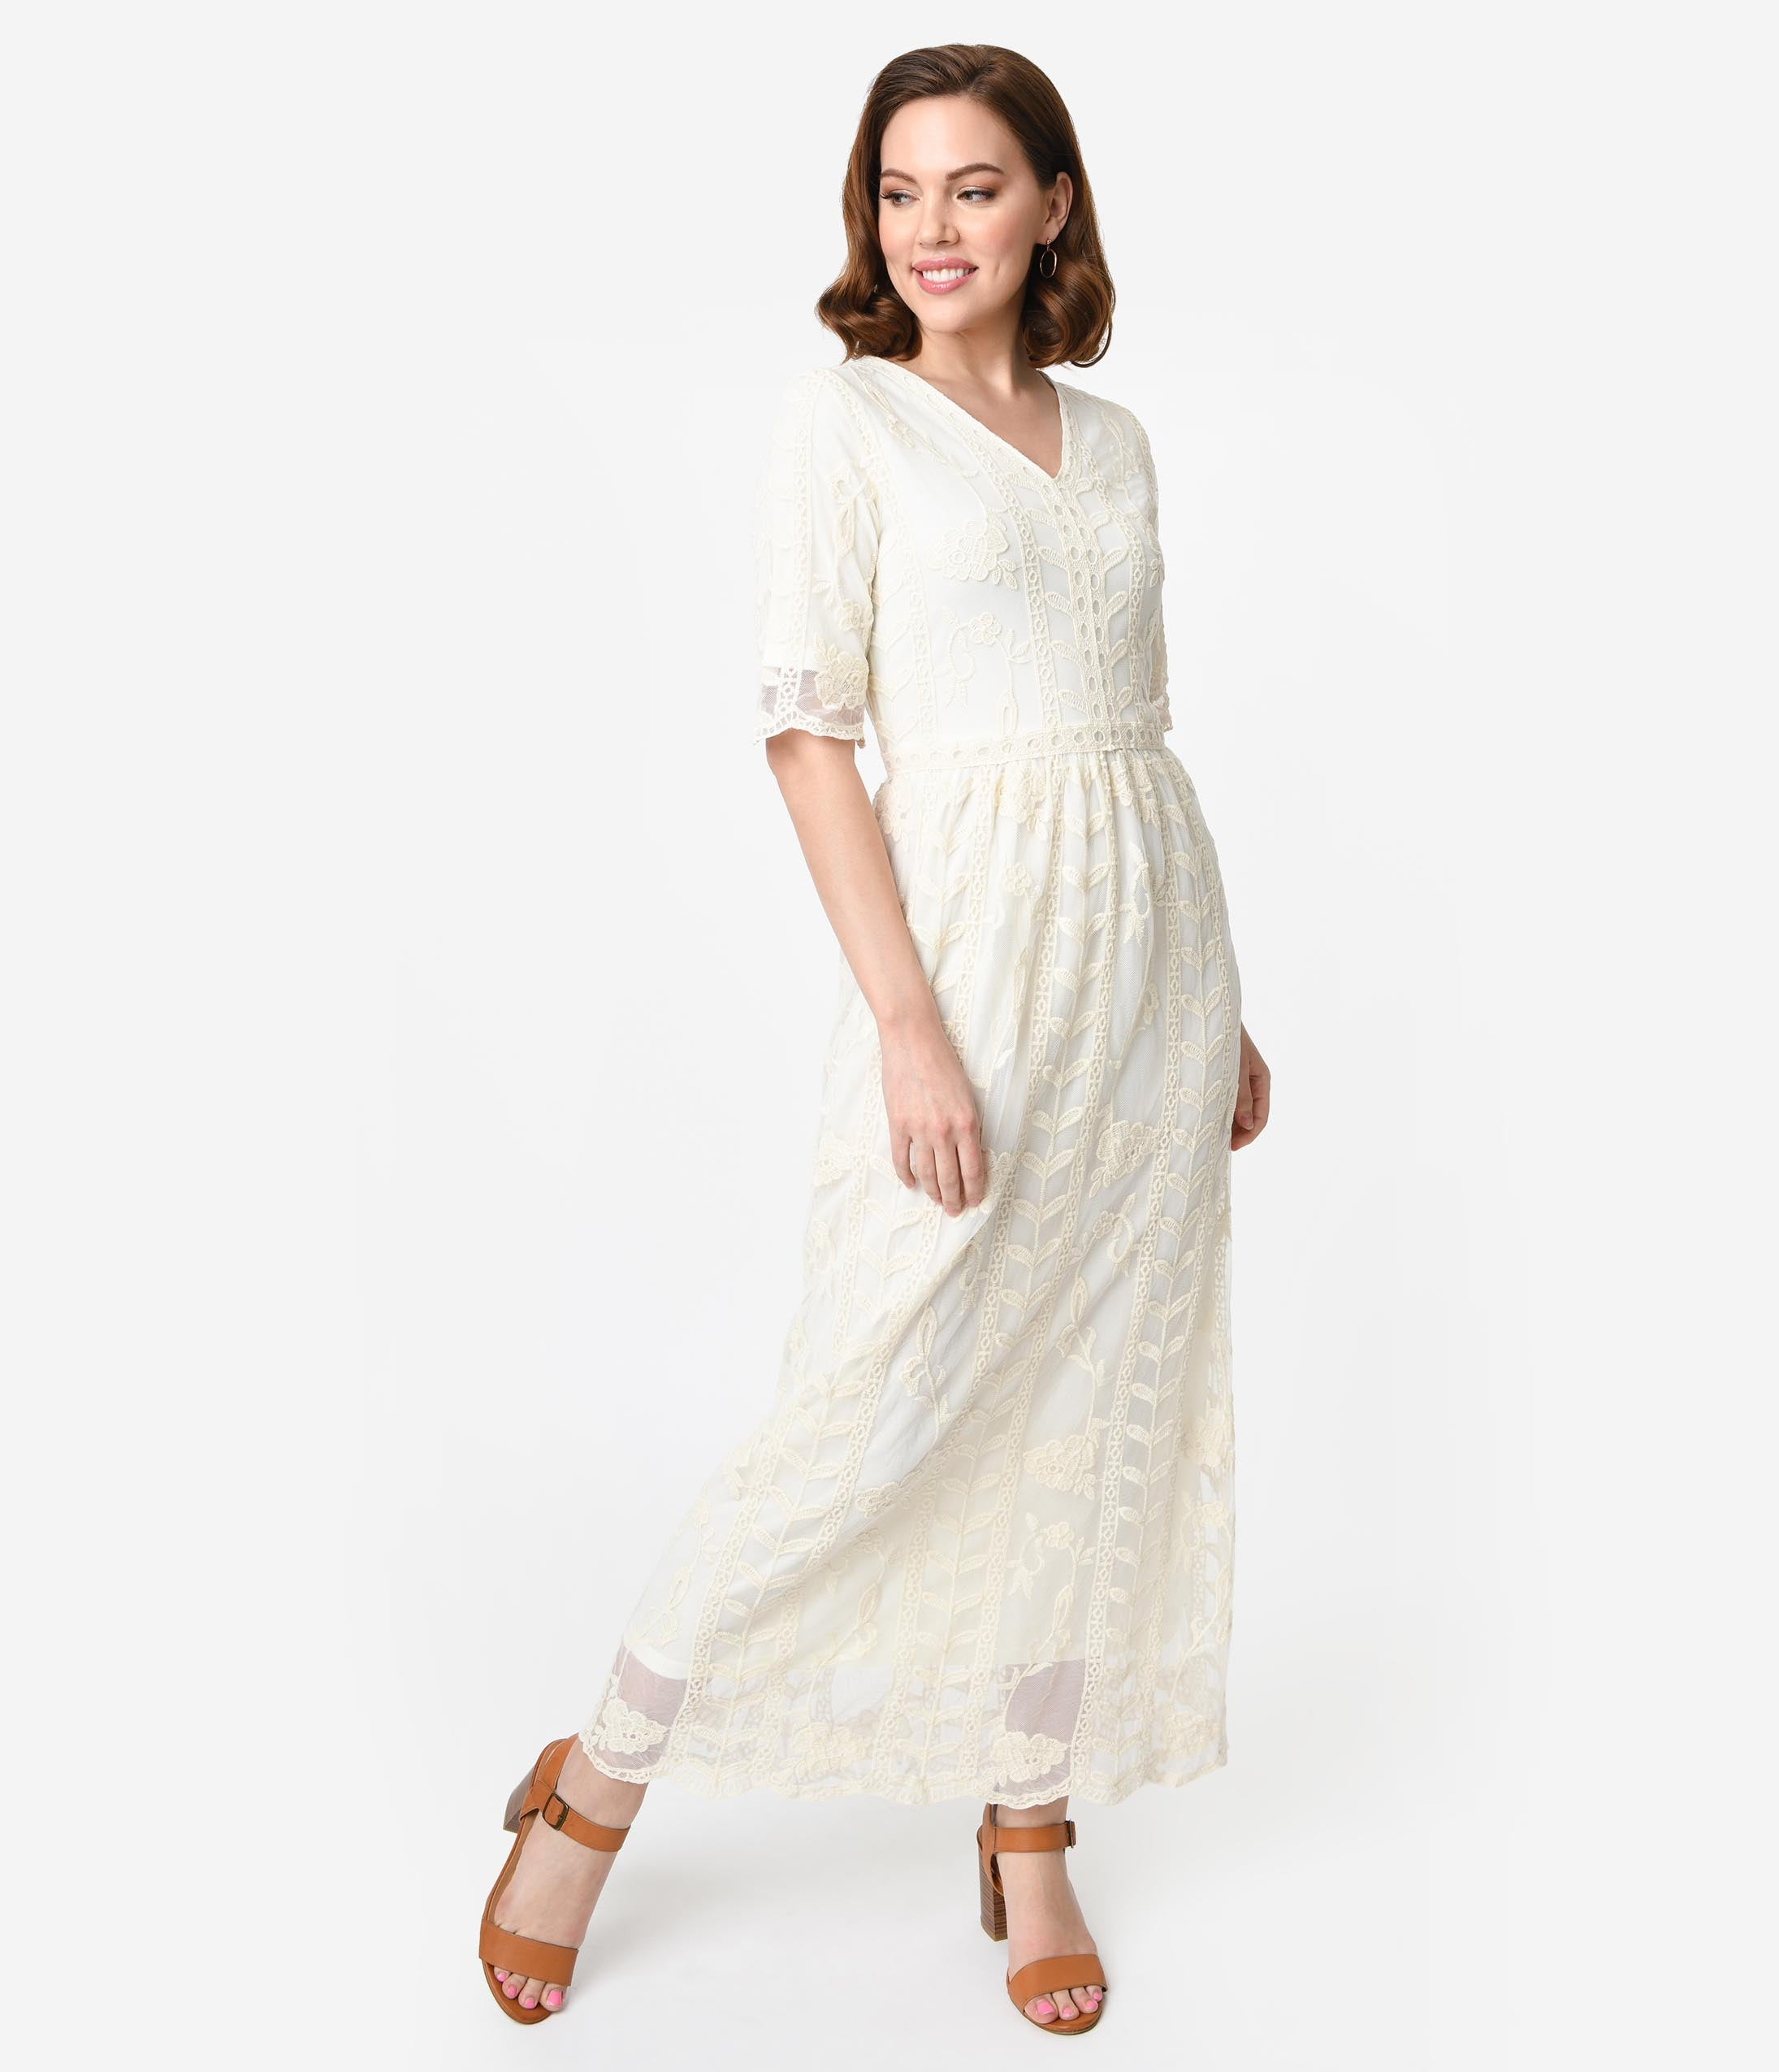 Old Fashioned Dresses | Old Dress Styles 1940S Style Antique Cream Lace Short Sleeved Long Dress $58.00 AT vintagedancer.com